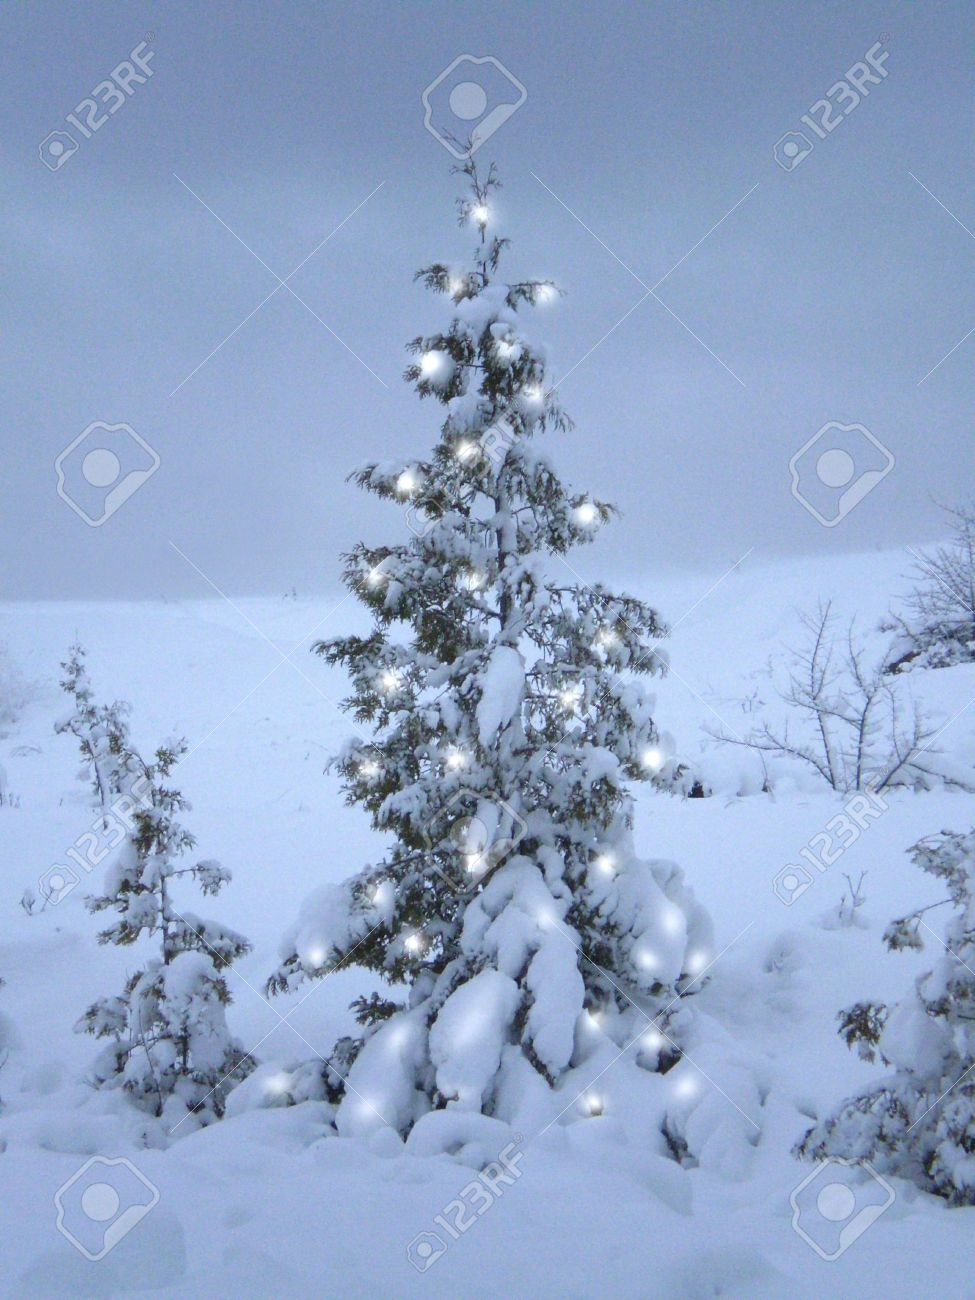 A Snow Covered Christmas Tree With Lights. Stock Photo, Picture ...